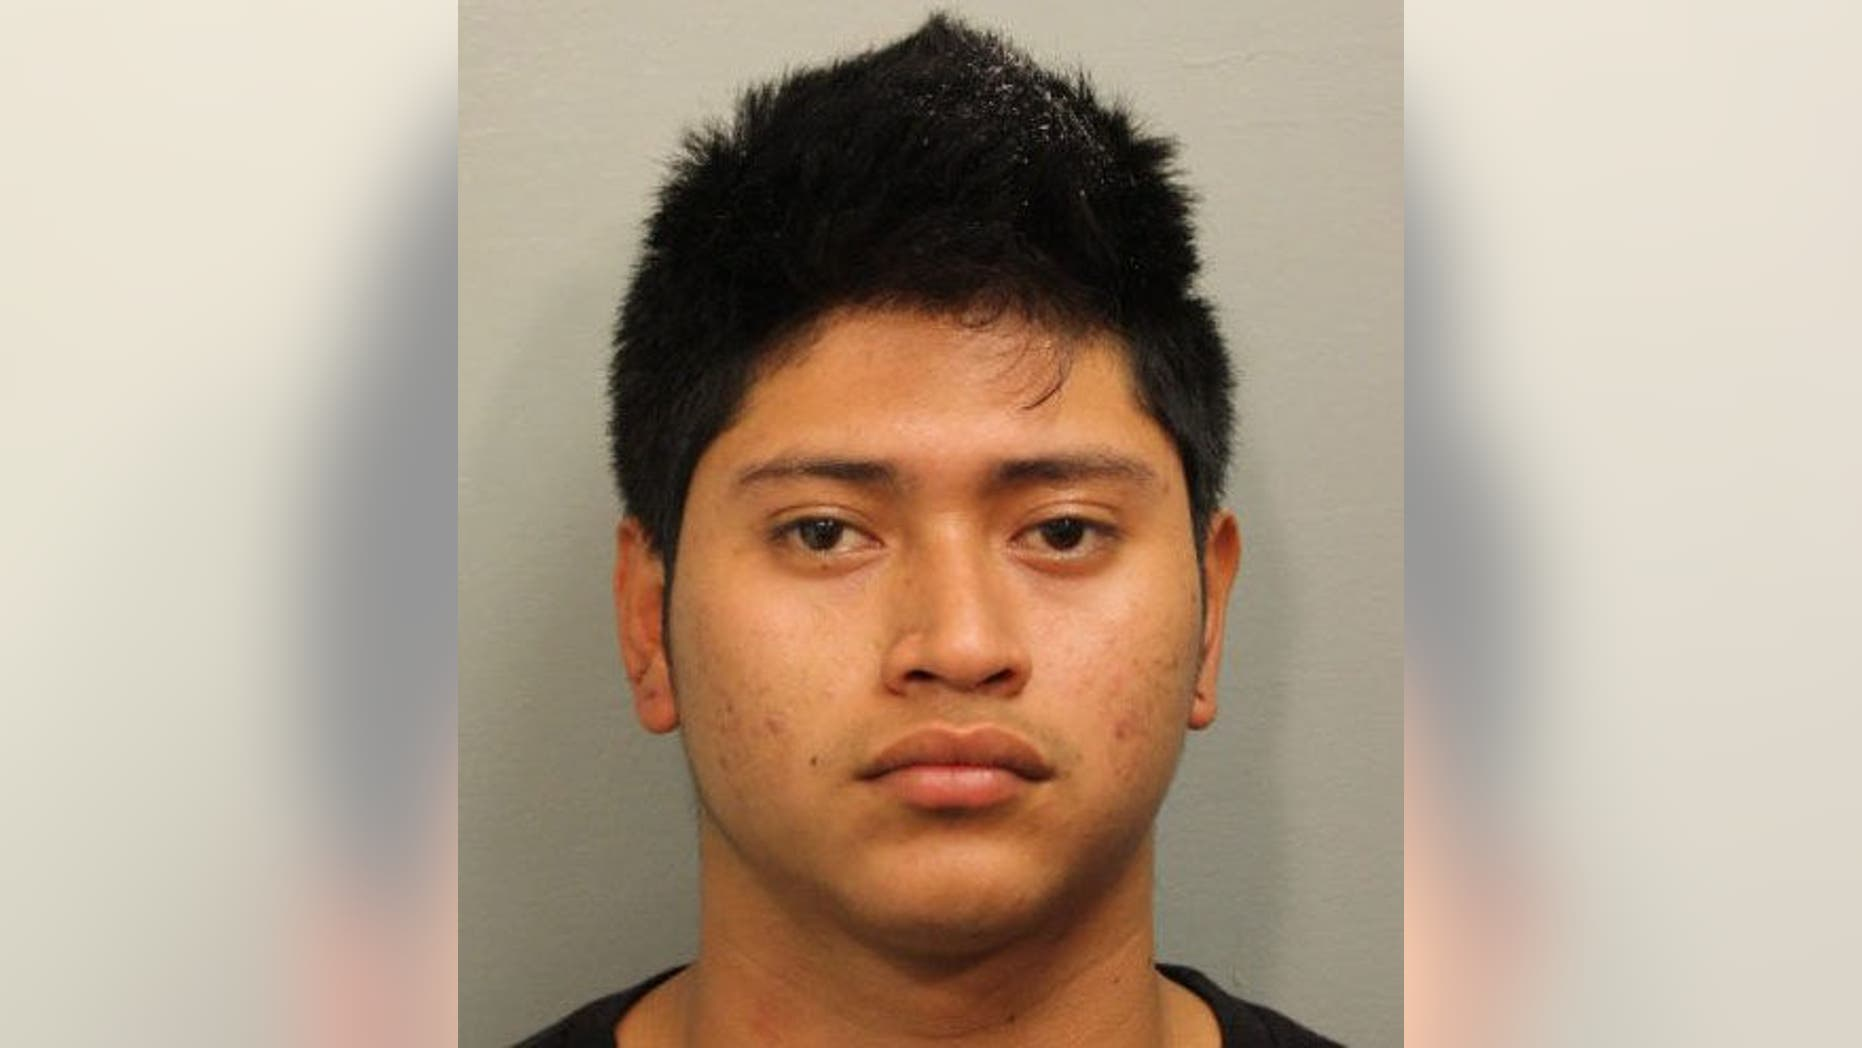 Douglas Alexander Herrera-Hernandez, an MS-13 gang member and an illegal immigrant in the U.S., was captured on Saturday. (Texas Department of Public Safety)